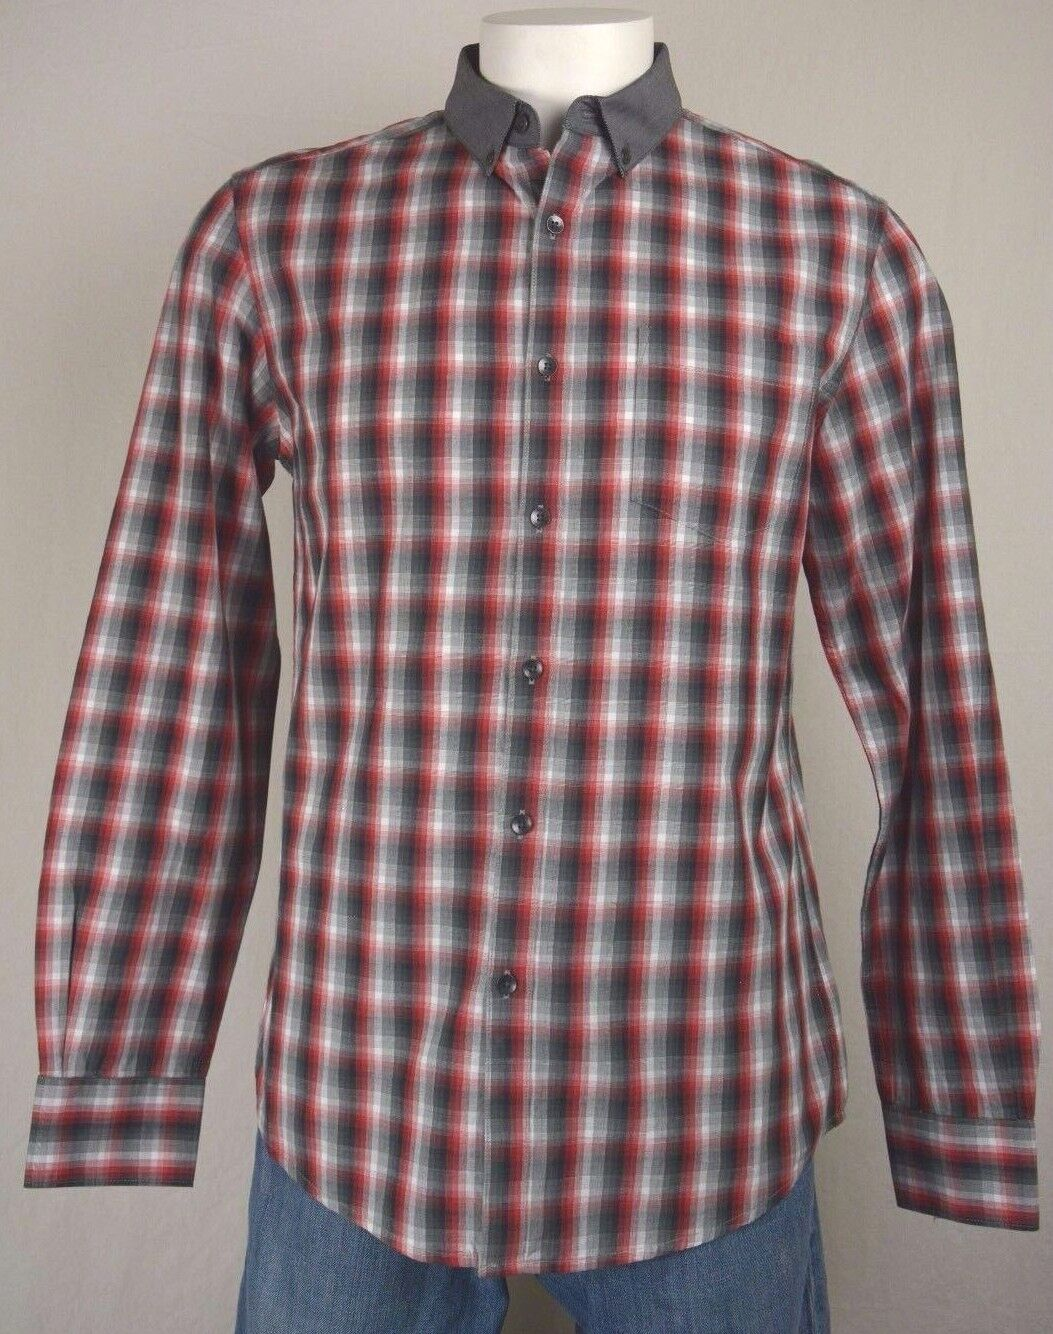 Men's Kenneth Cole size Medium M Red Plaid Long Sleeve Slim Button Up Shirt NEW